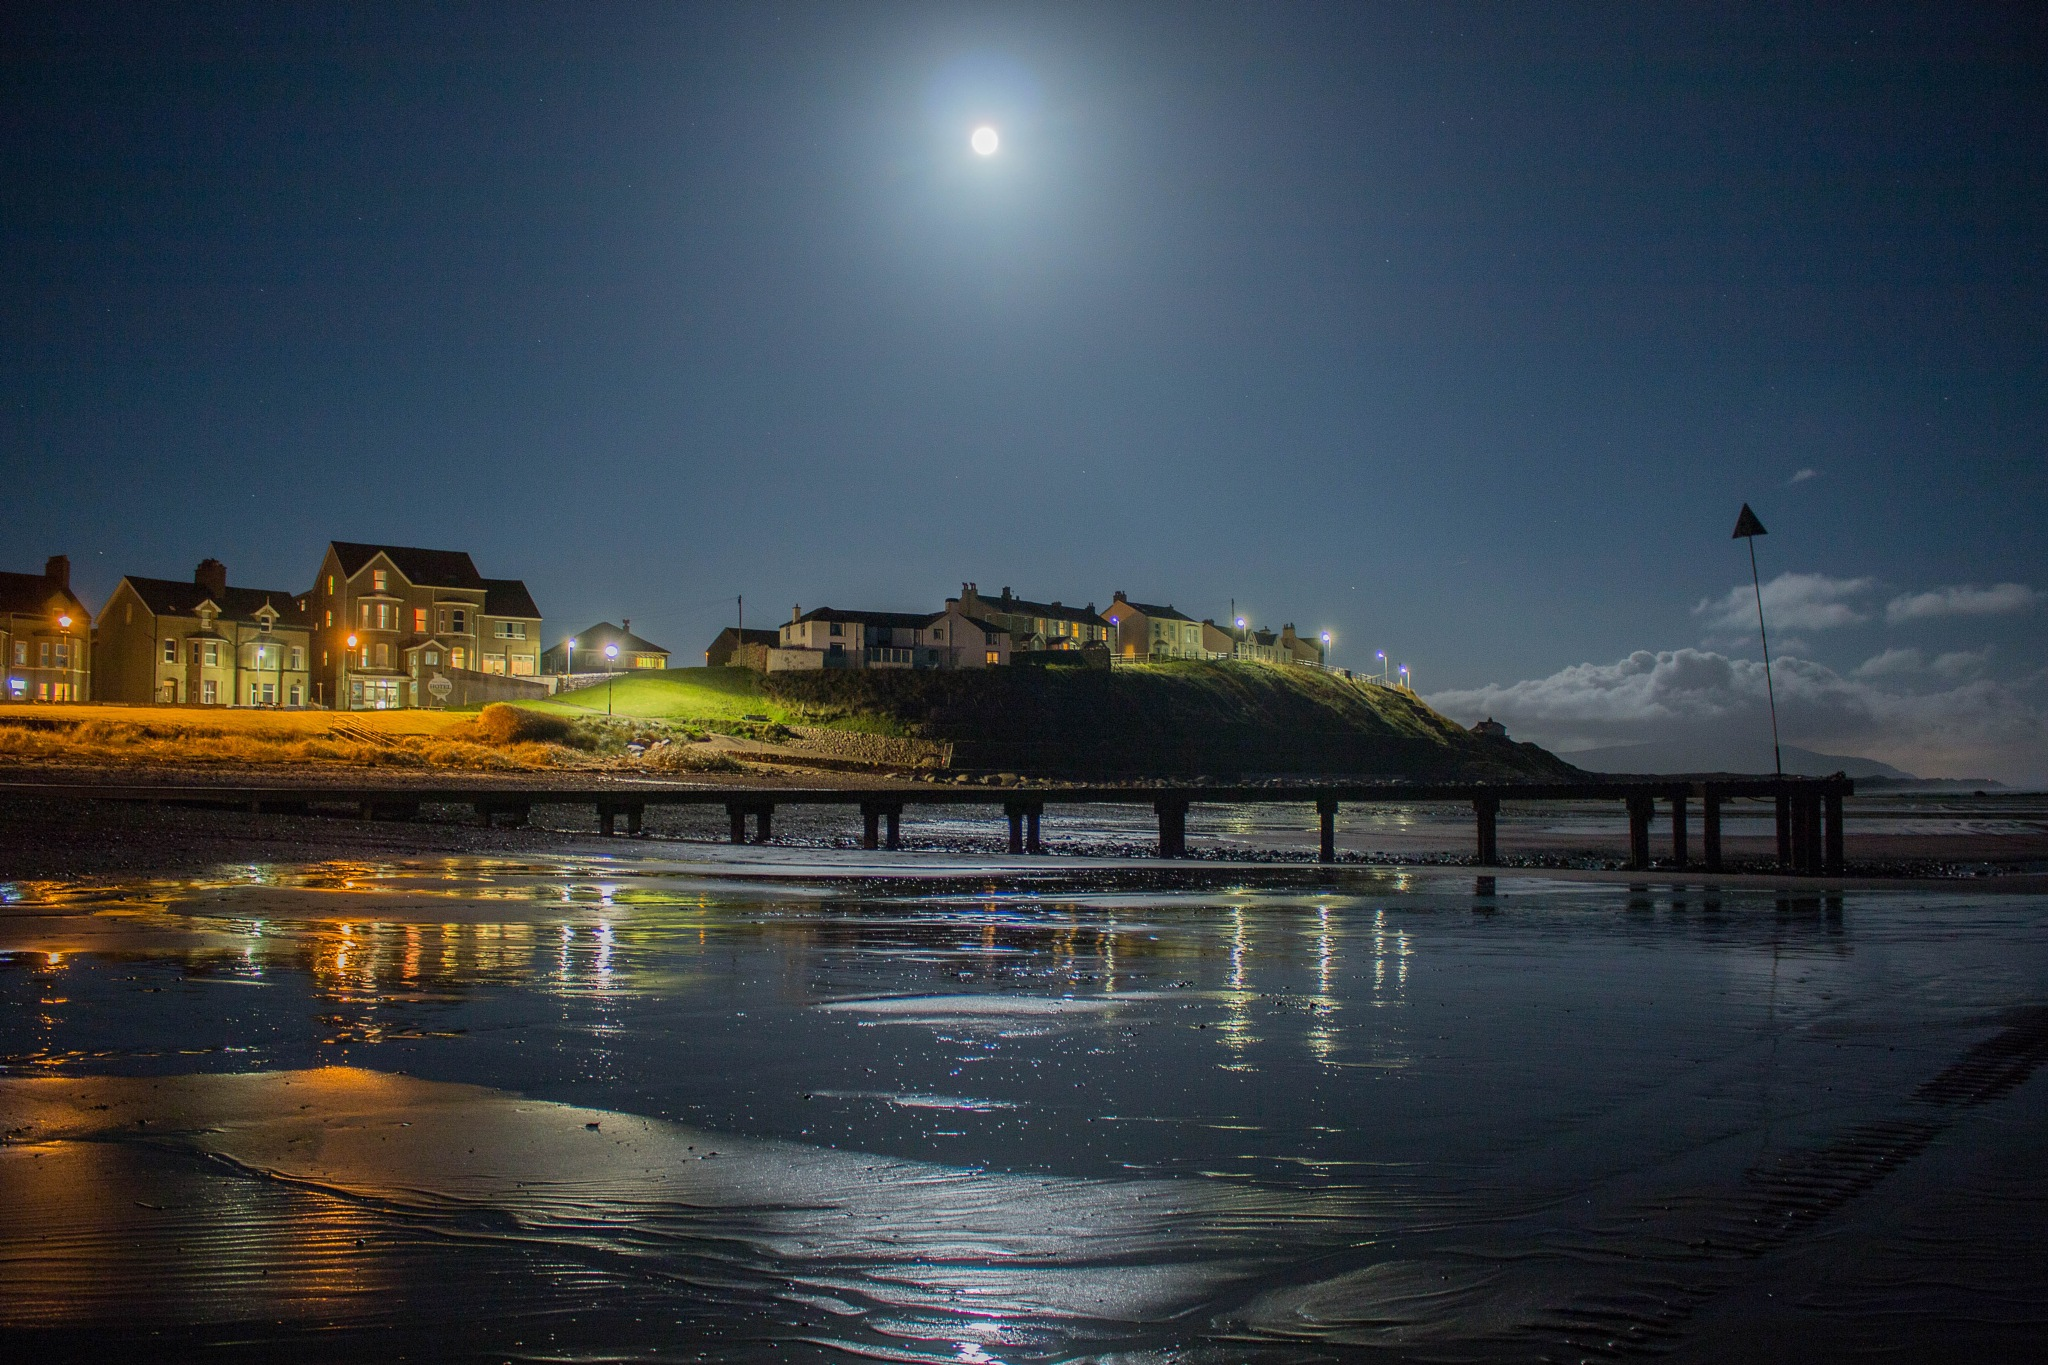 Full Moon over Seascale by Chris Wood